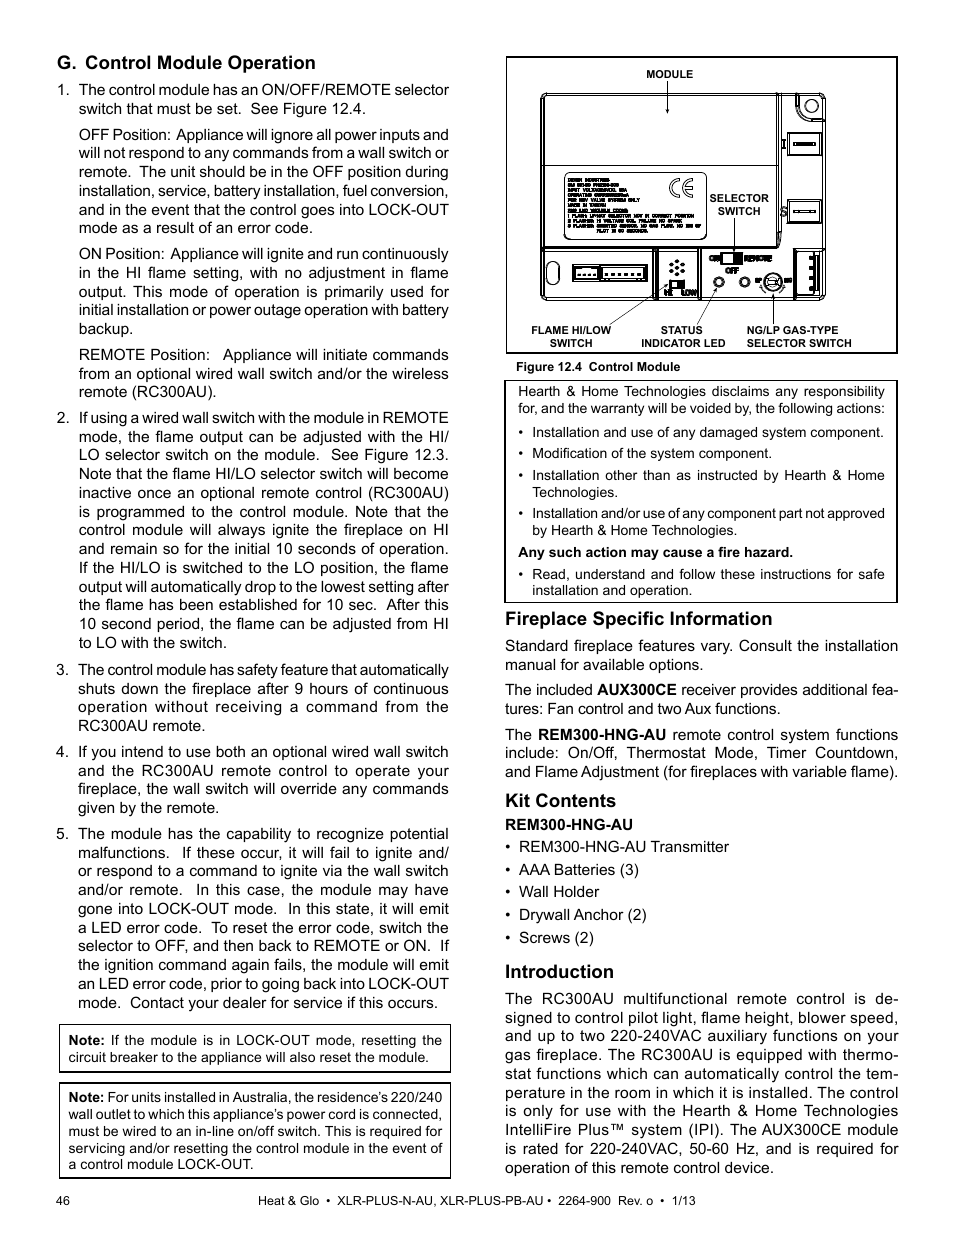 G Control Module Operation Fireplace Specific Information Kit